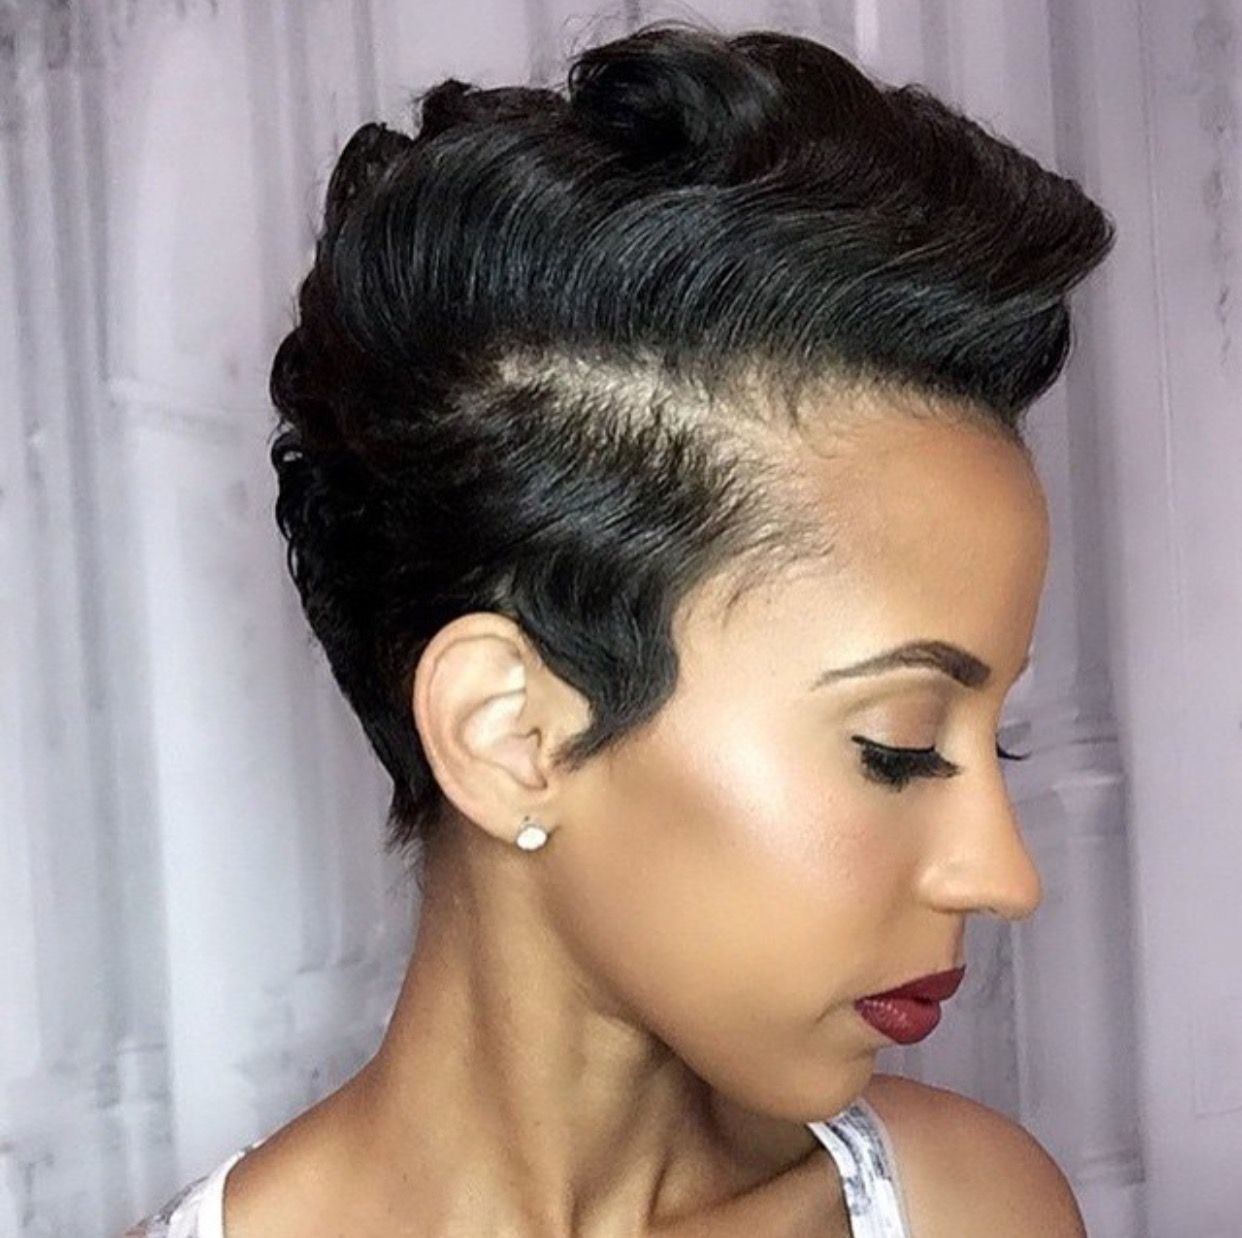 Pin by jaleecia jaunae on short hairstyles pinterest short hair